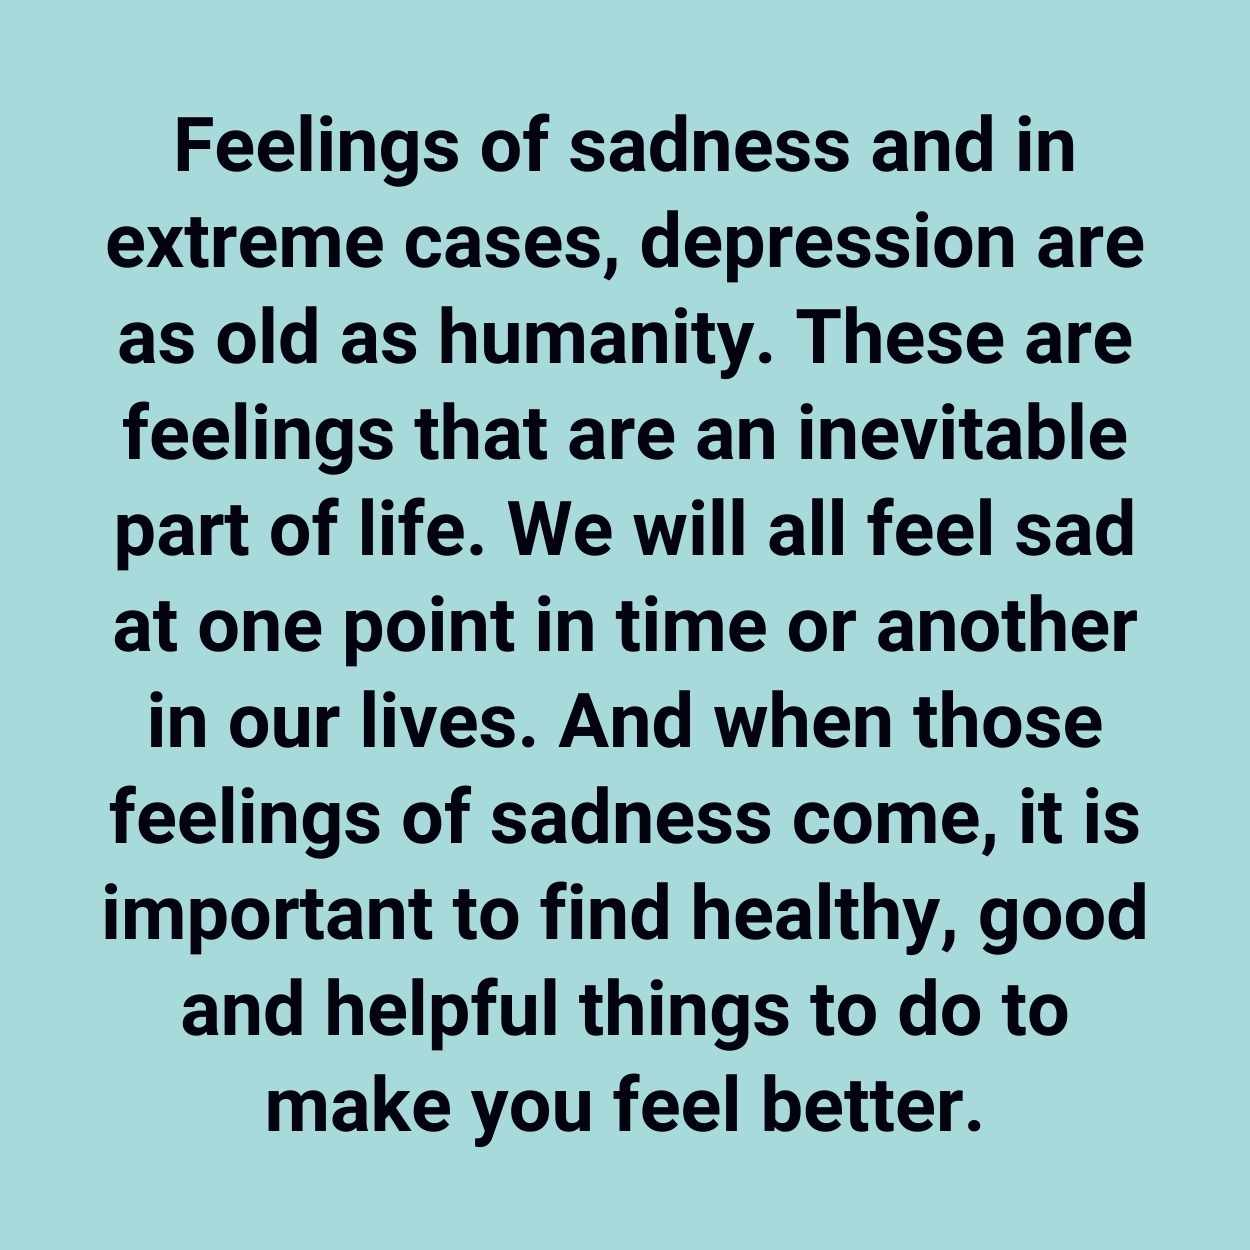 Feelings of sadness and in extreme cases, depression are as old as humanity. These are feelings that are an inevitable part of life. We will all feel sad at one point in time or another in our lives. And when those feelings of sadness come, it is important to find healthy, good and helpful things to do to make you feel better.